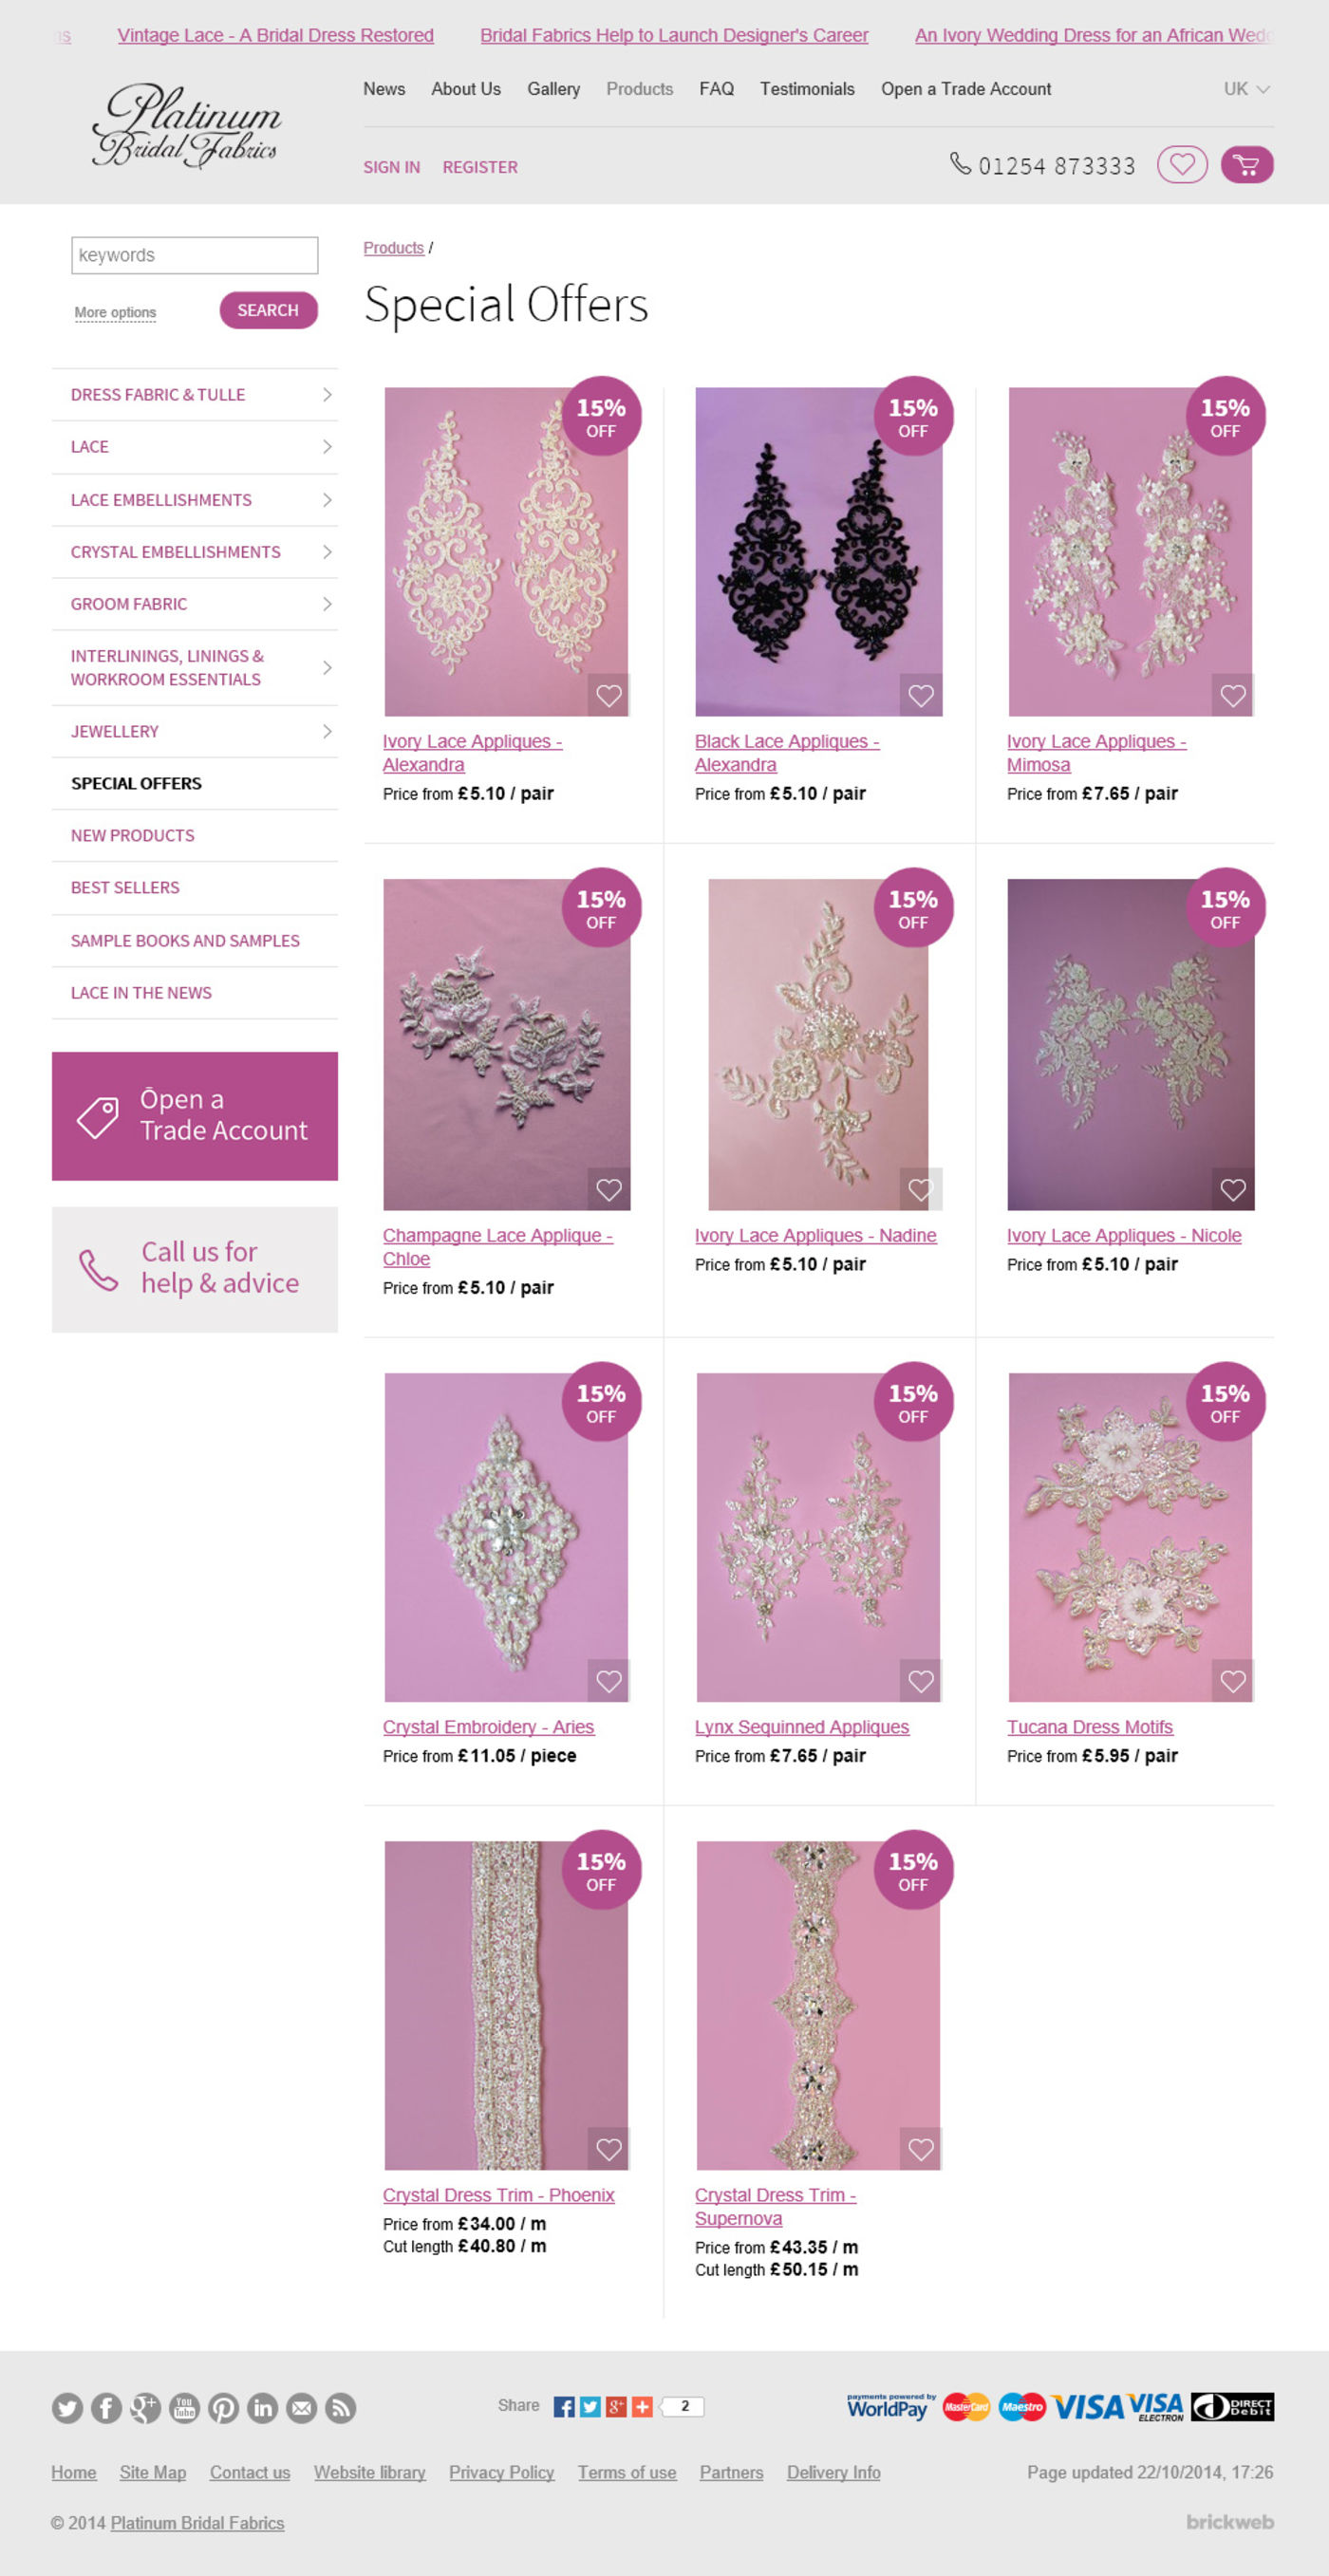 Bridal Fabrics 2014 Products